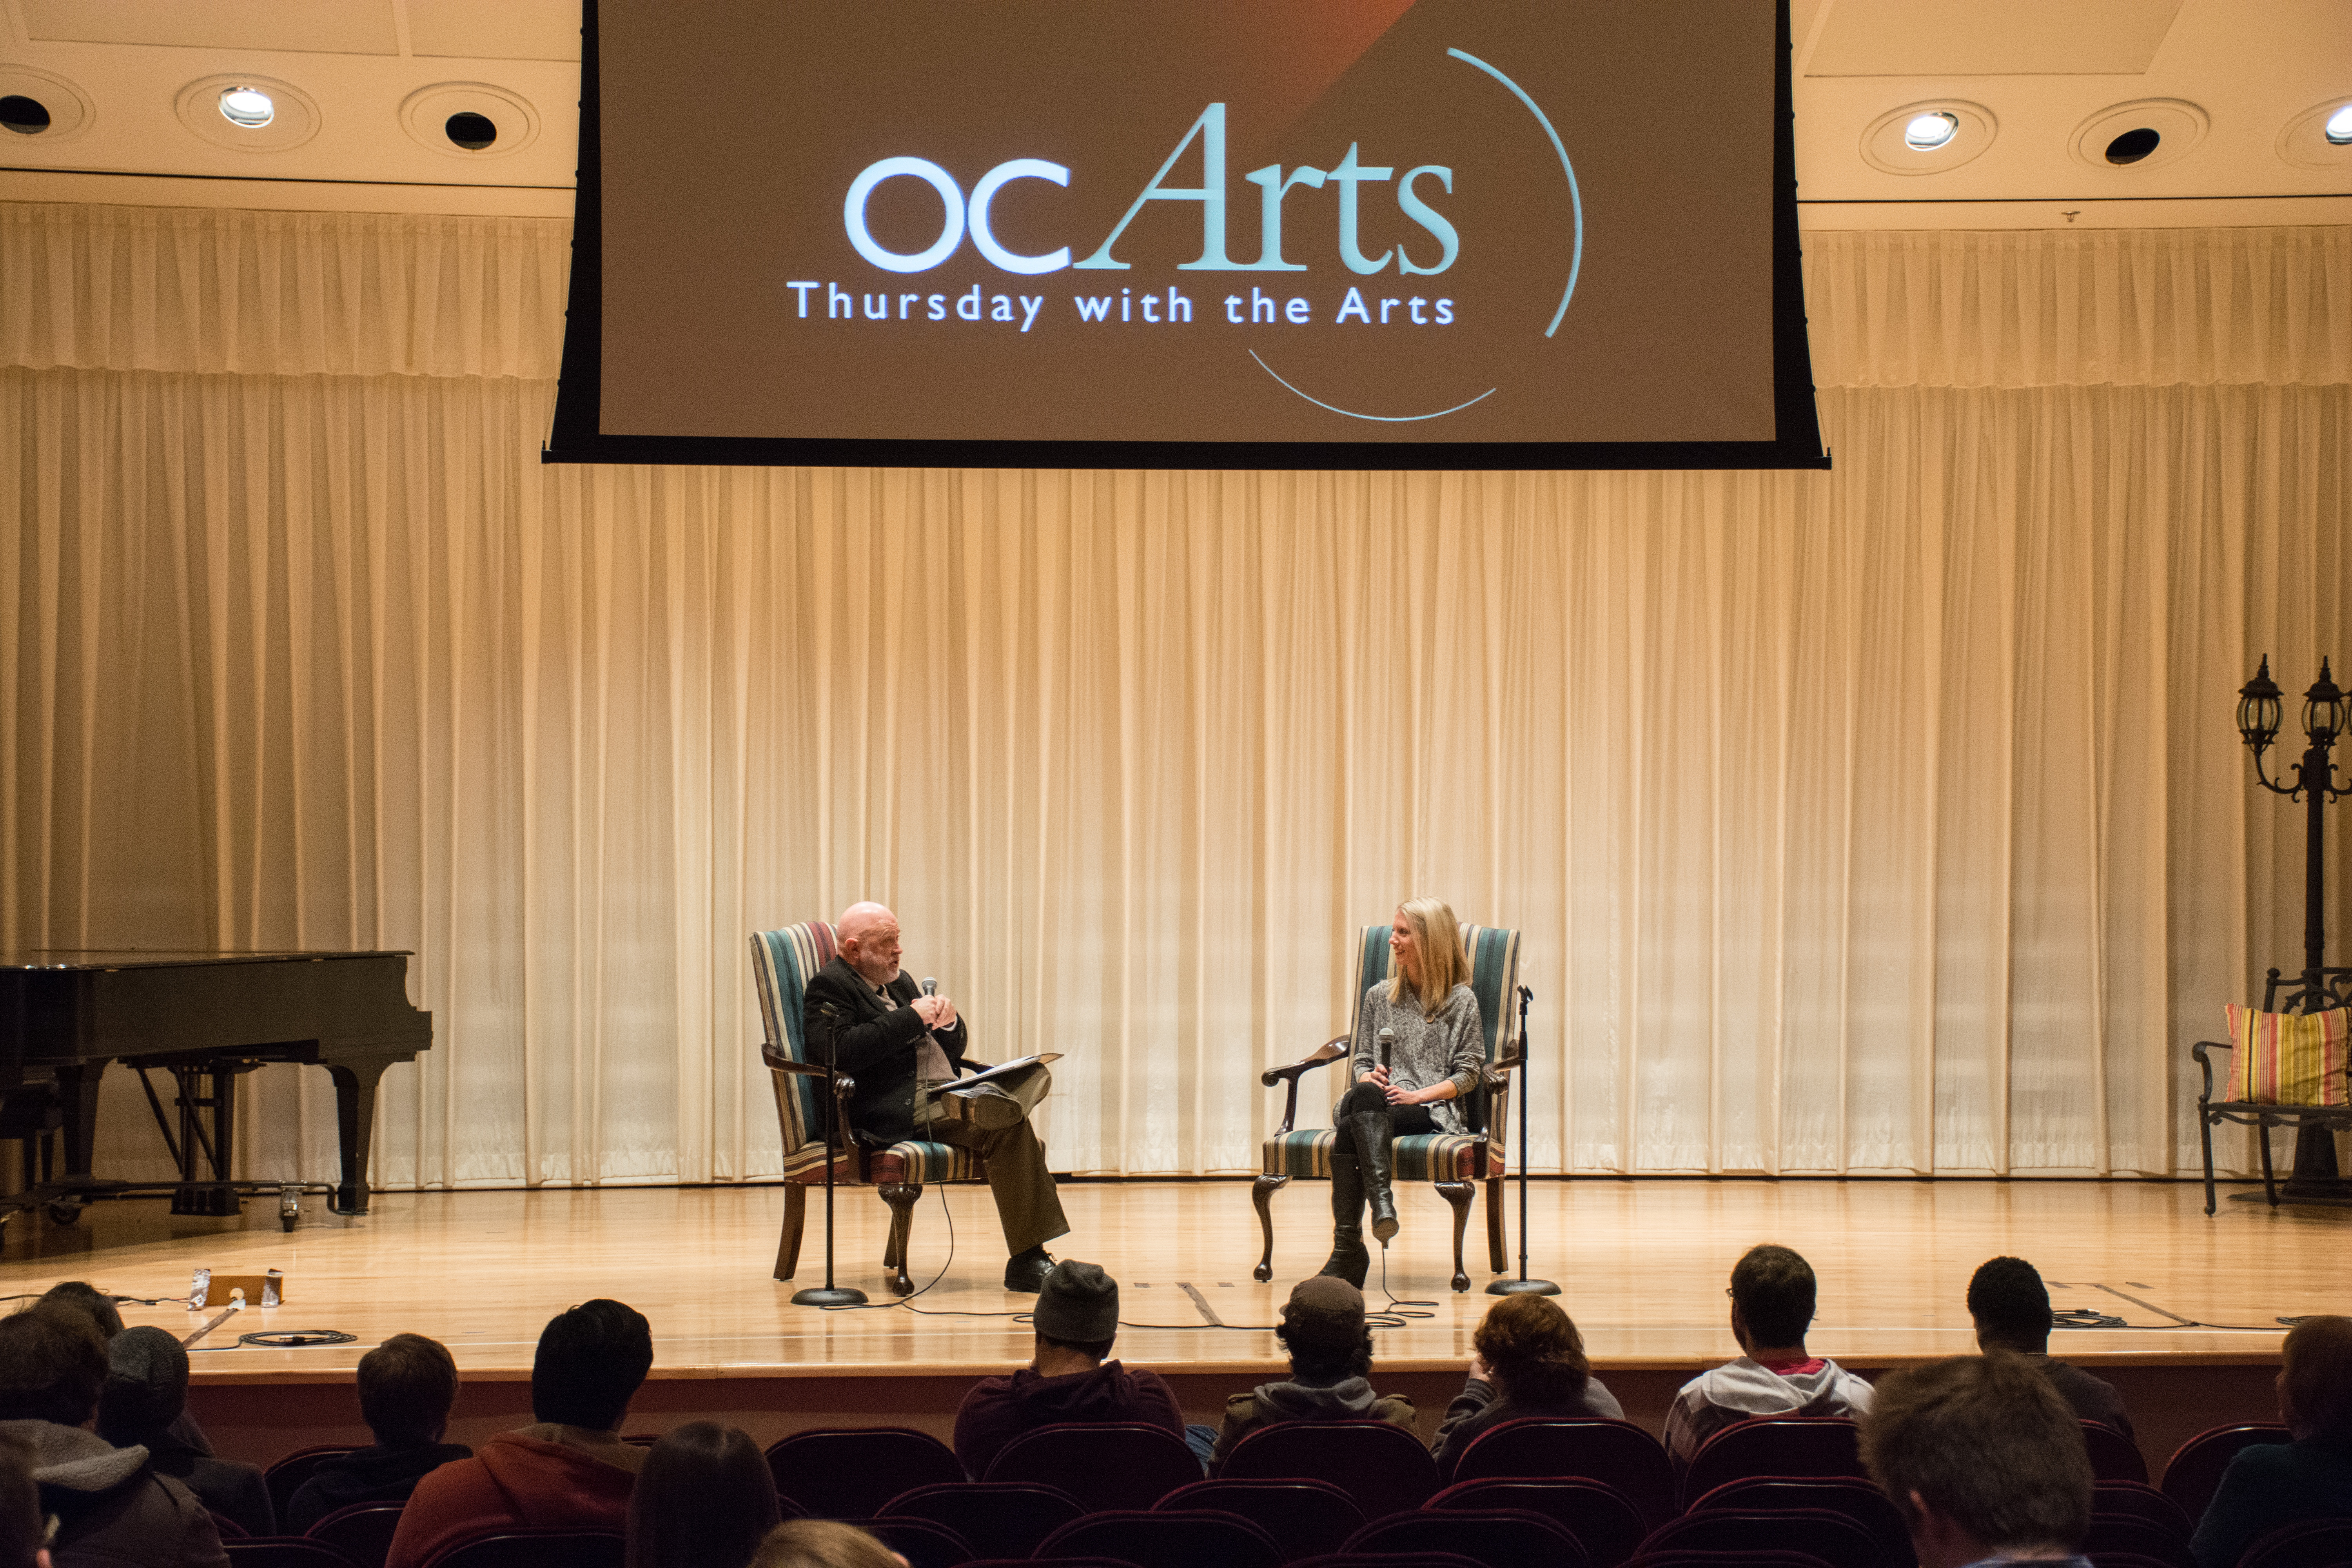 The first OC Arts chapel was on Thursday, Feb. 4 in the Adams Recital Hall. Photo by Abby Bellow.